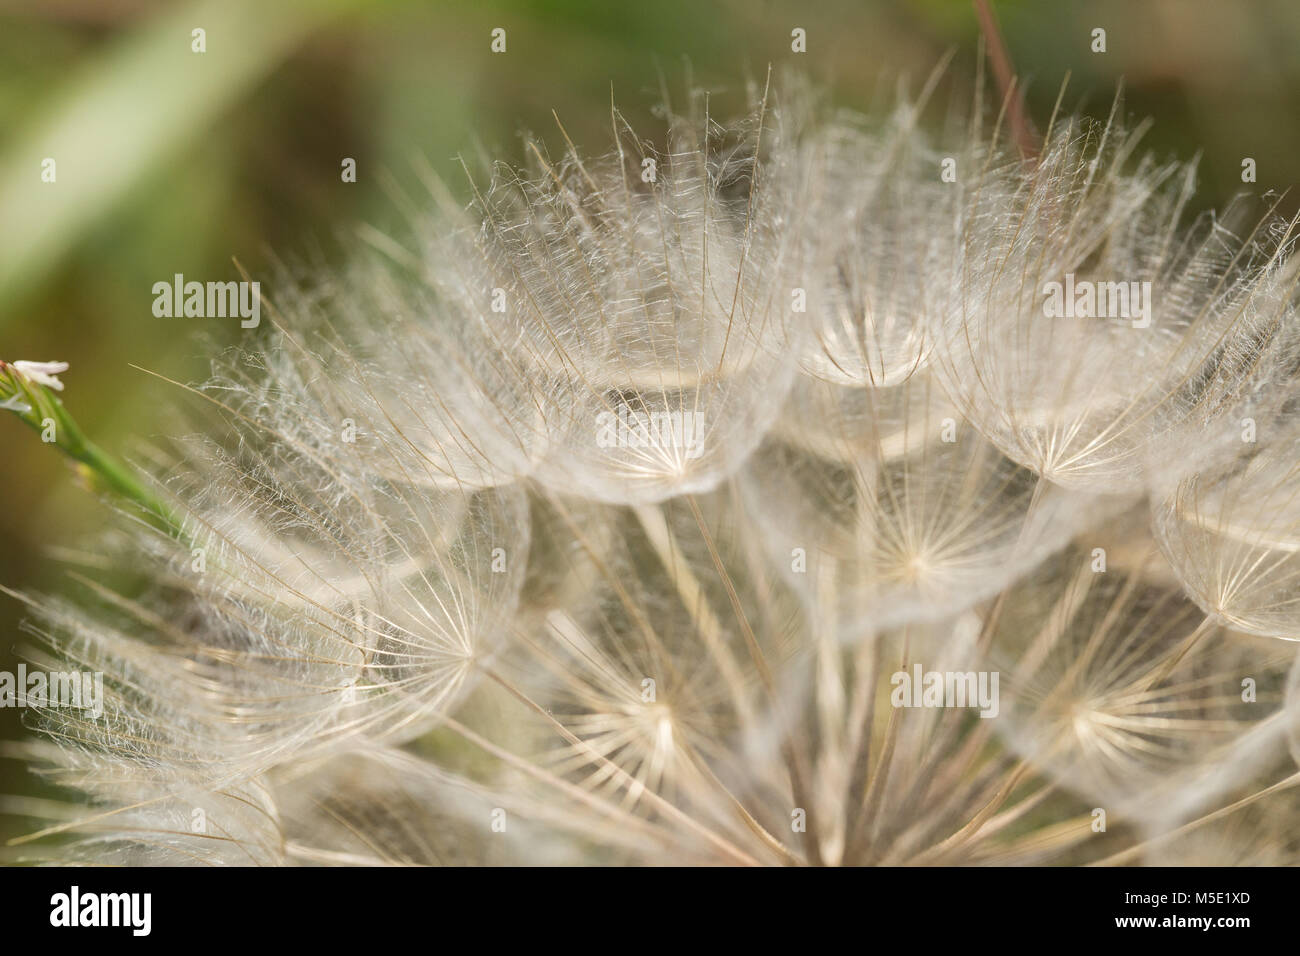 wind, beautiful, natural, beauty, season, macro, meadow, flower, nature, summer, plant, abstract, evening, shine, - Stock Image